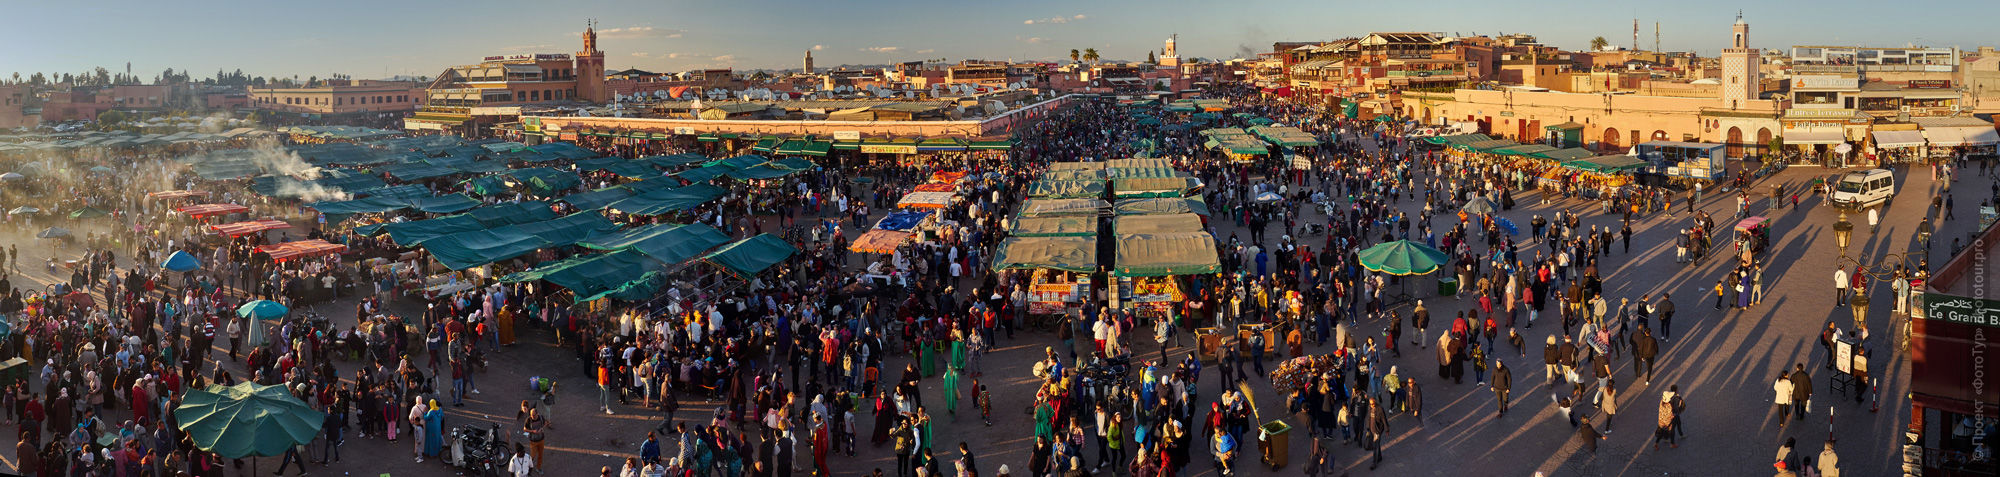 Area of Jamaâ El Fna, Marrakech, Morocco, photo tour of Morocco, October 2018.